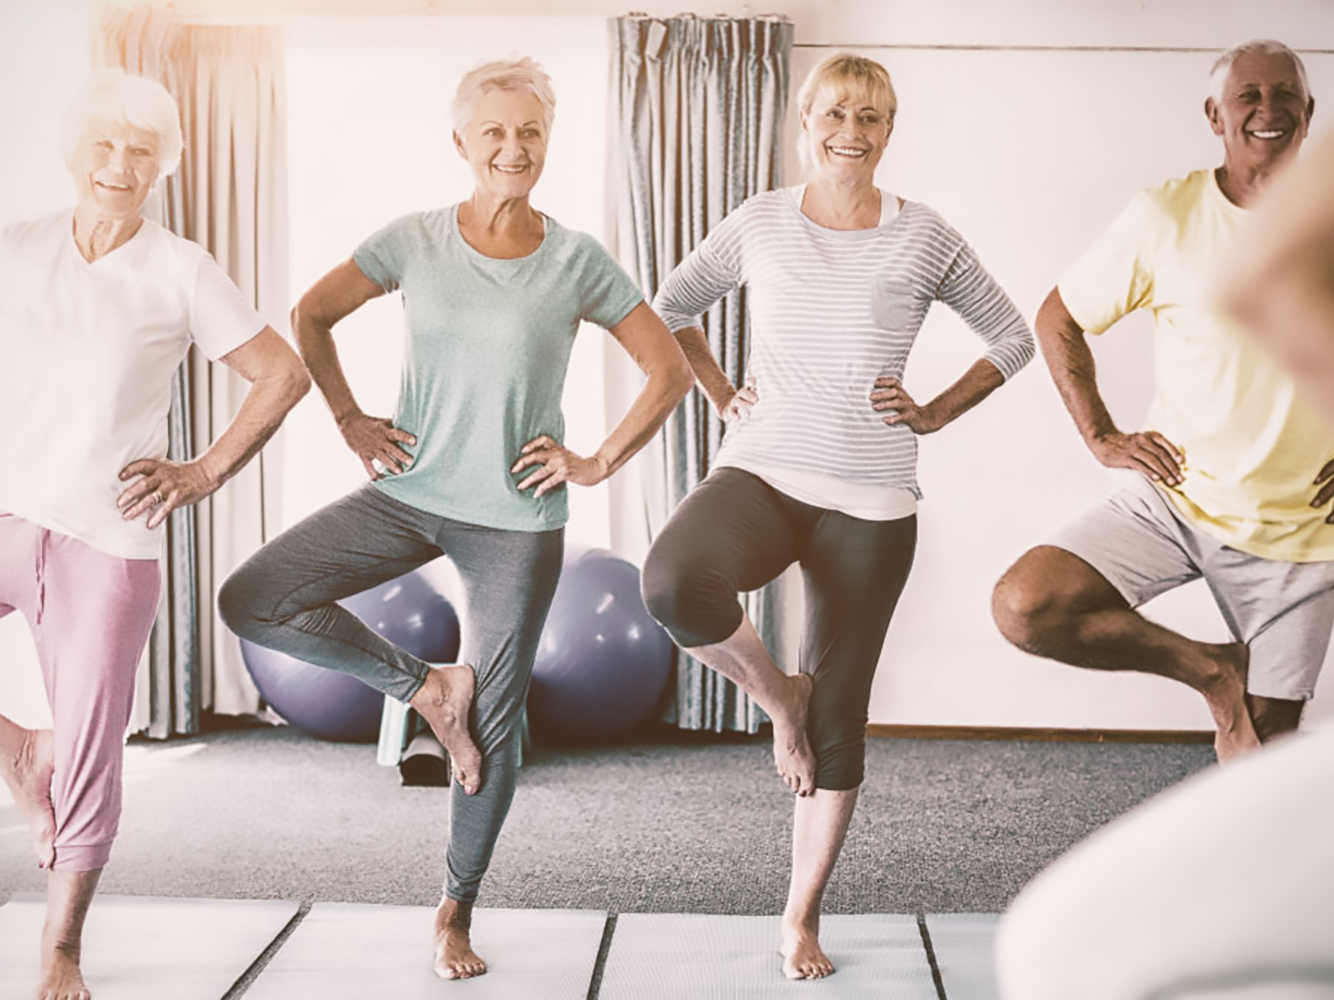 The Center Charlottesville | Health and Fitness